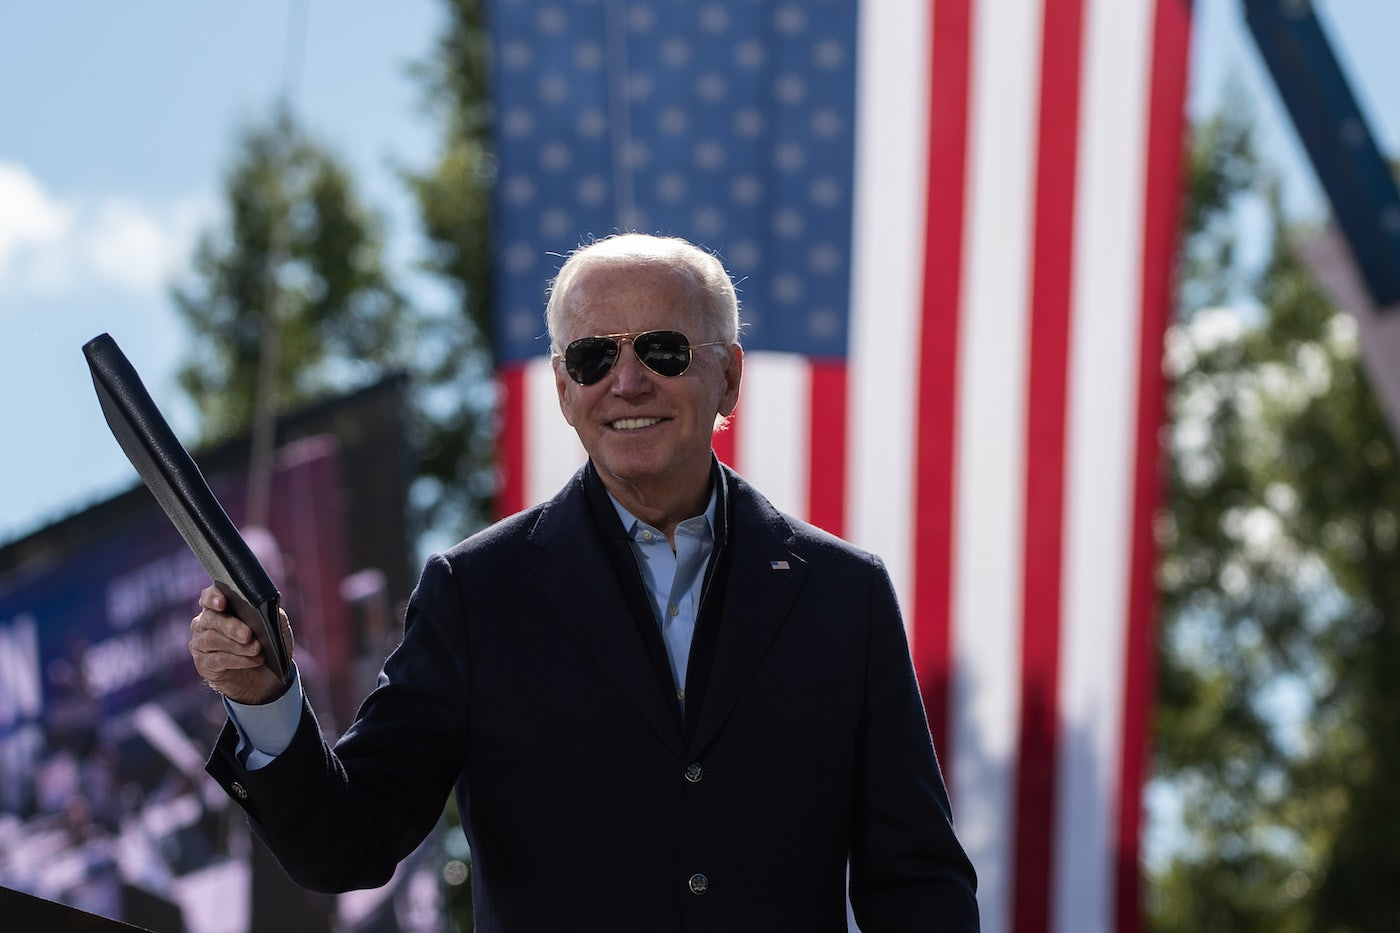 Democratic presidential nominee Joe Biden holds a binder in front of an American flag at a campaign event.